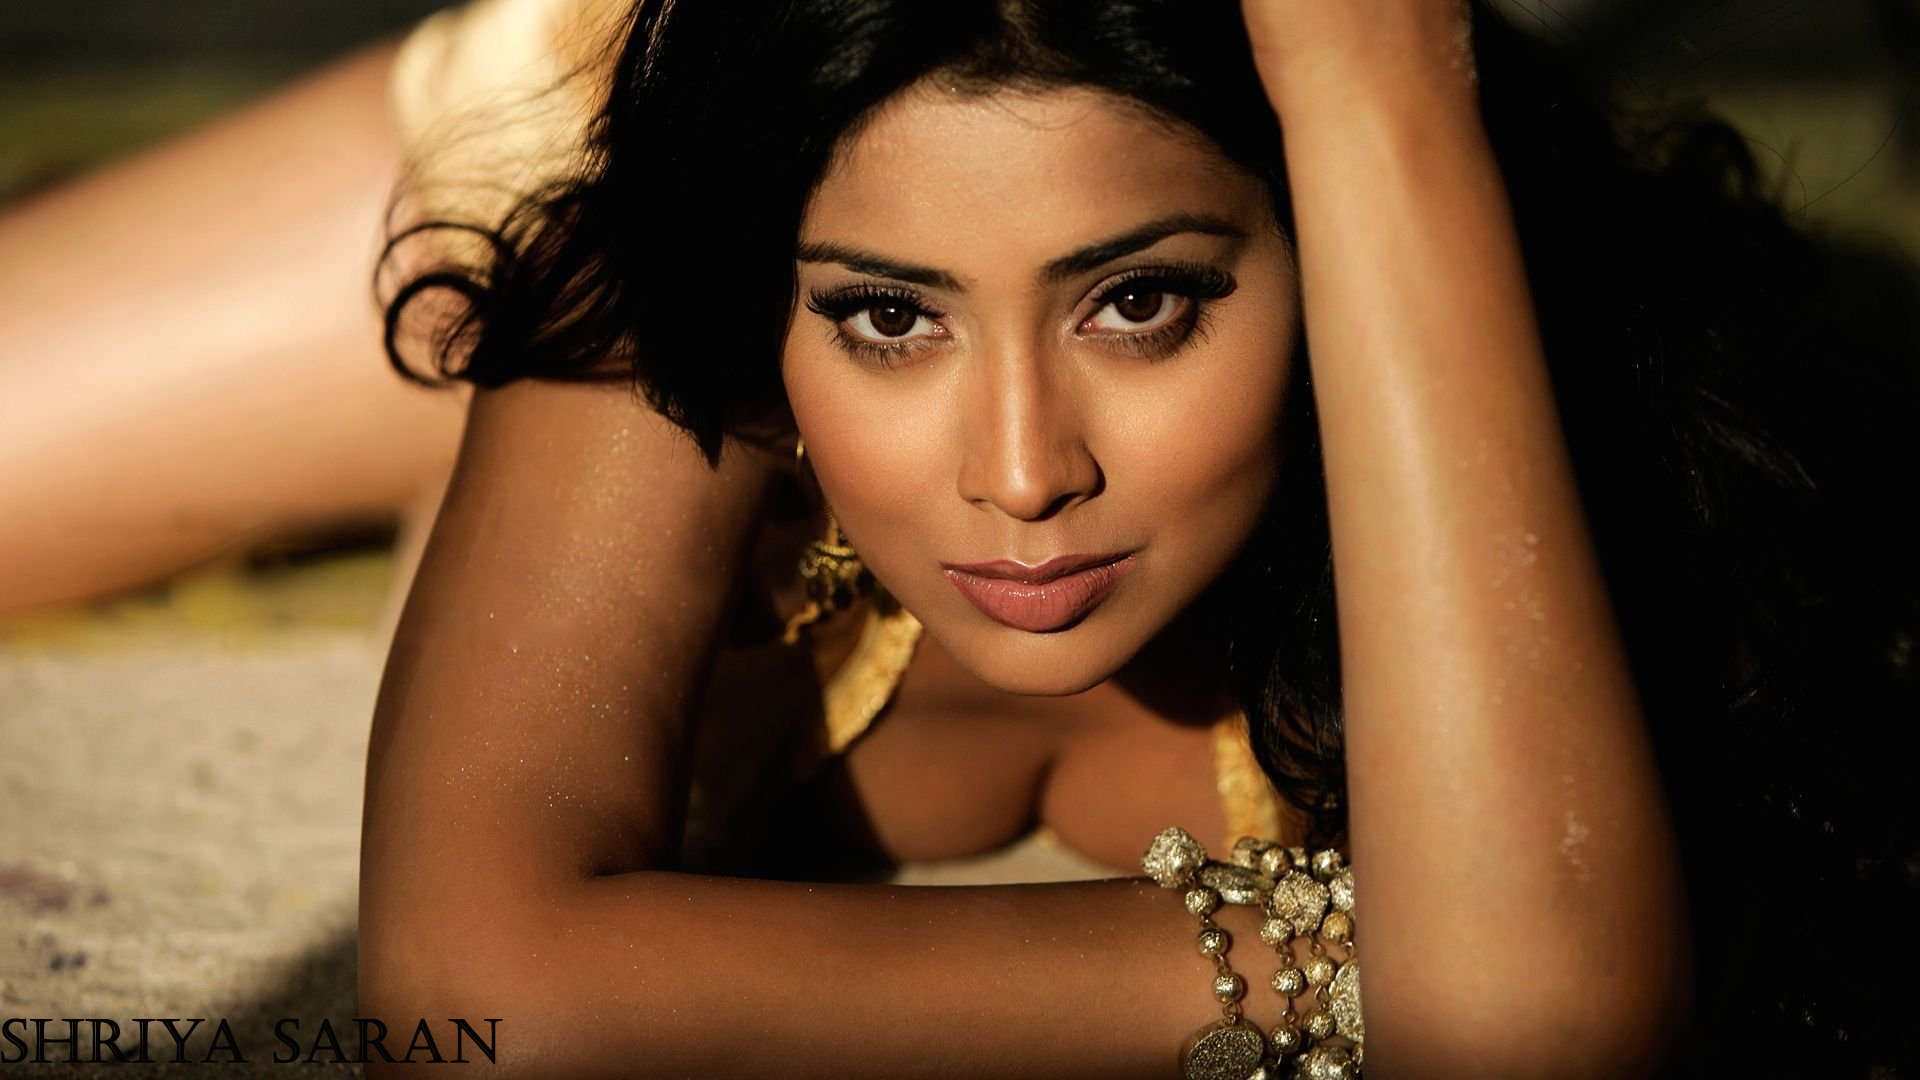 Shriya Saran Hot wallpapers in bikini